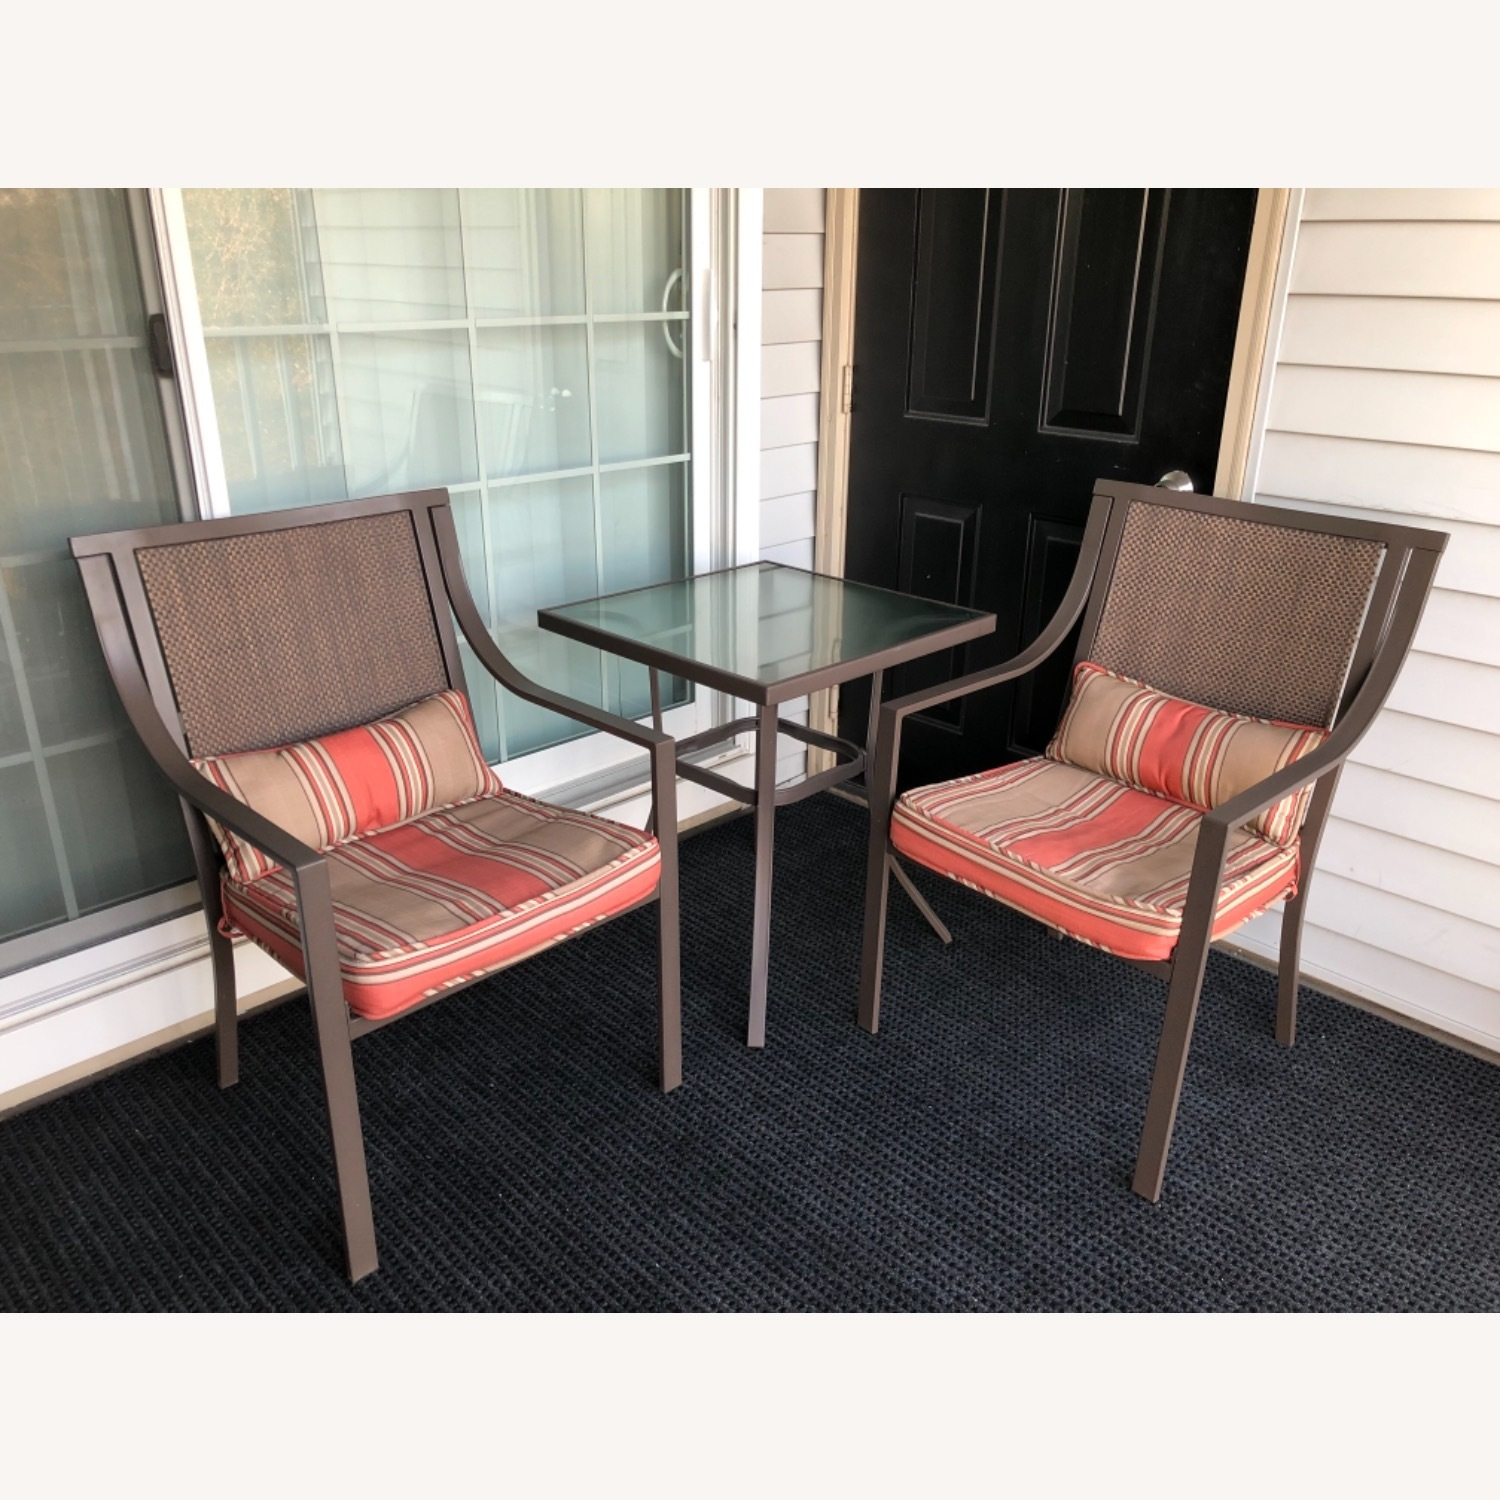 Outdoor Patio Furniture Set - image-1